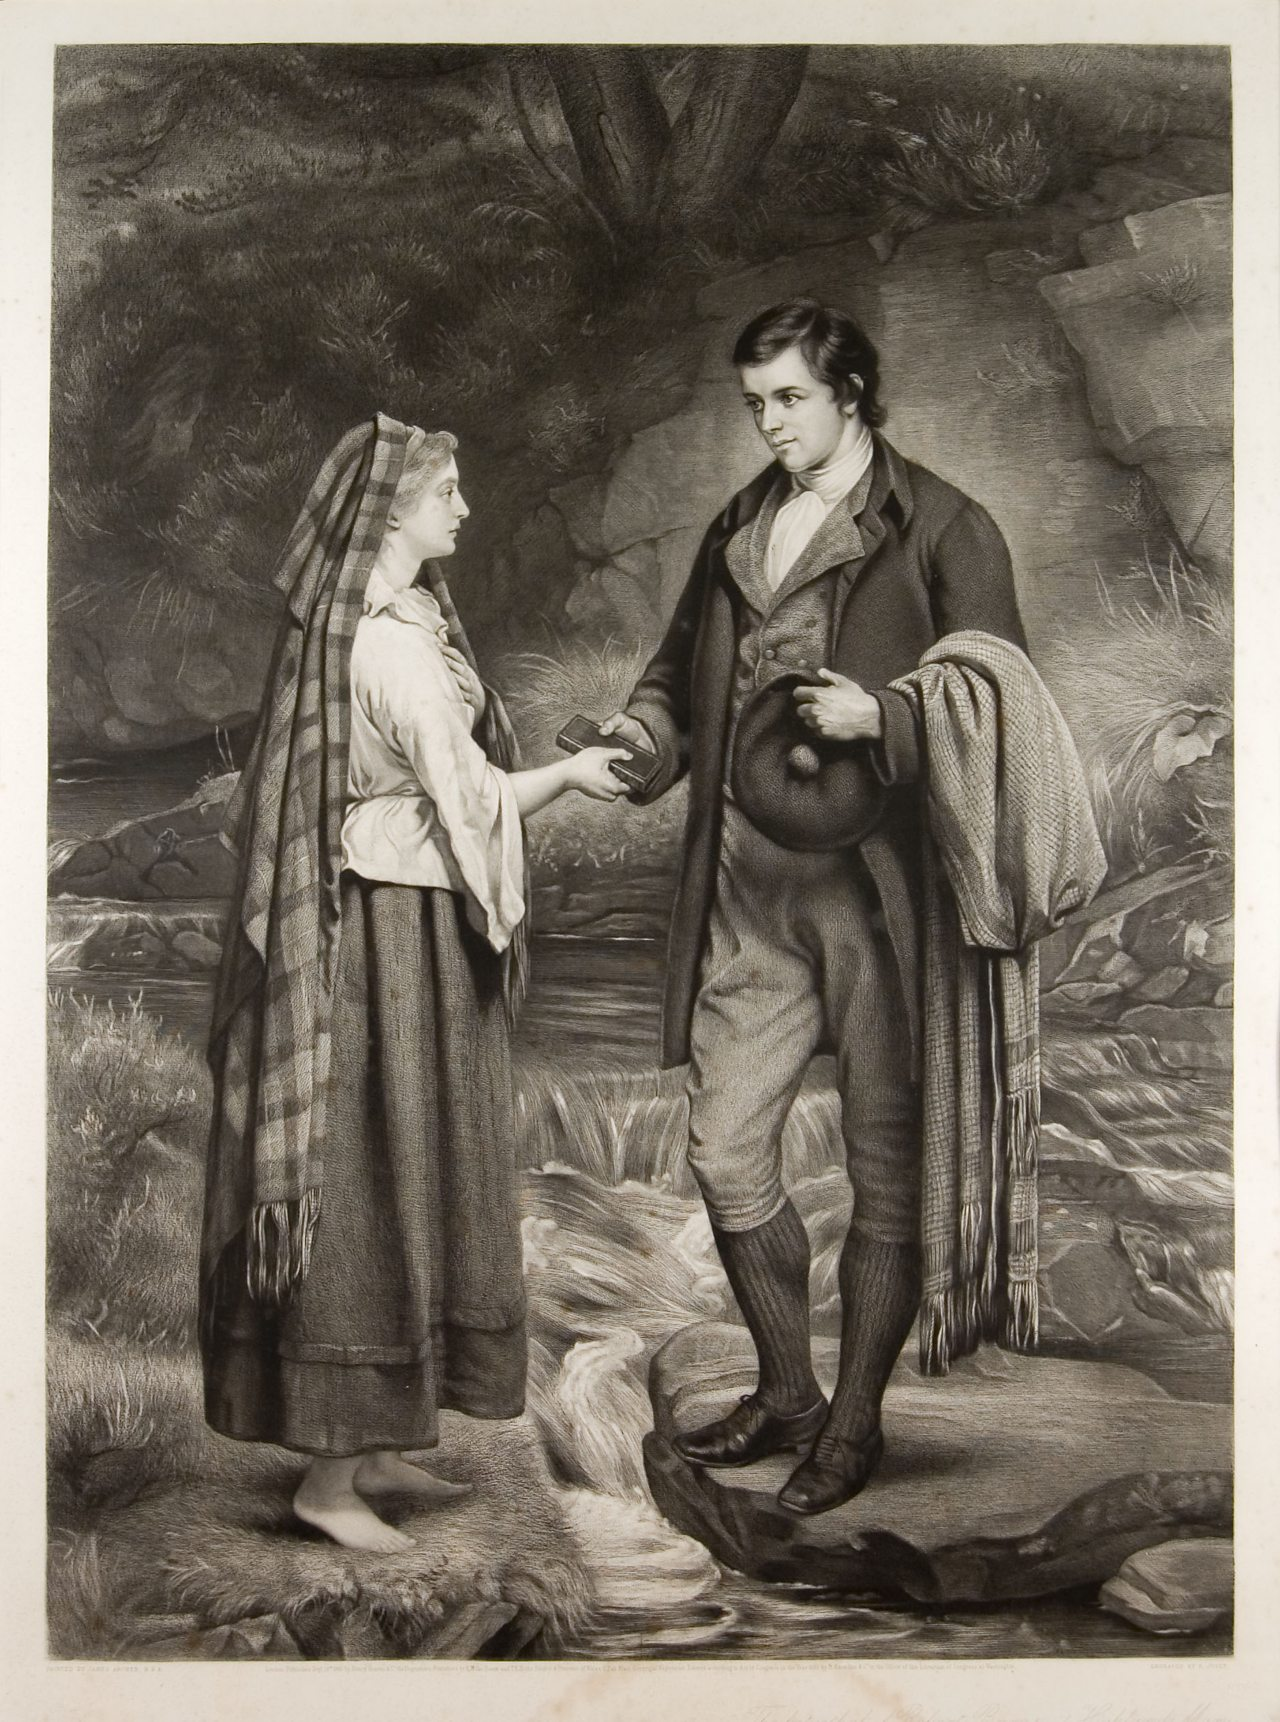 Picture showing Burns and Highland Mary by a stream